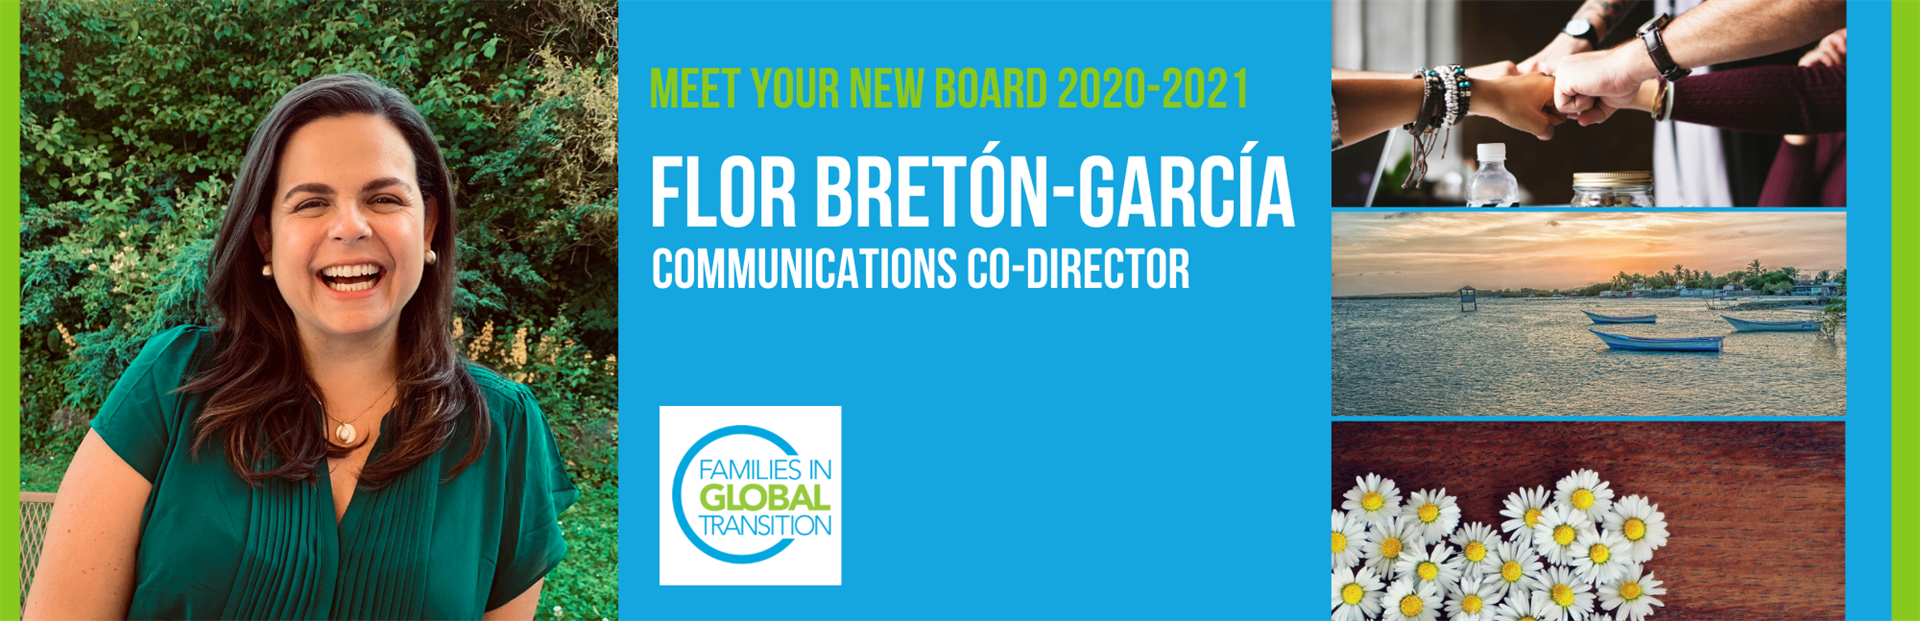 blog post title: Meet the new FIGT communications co-director Flor Bretón-García